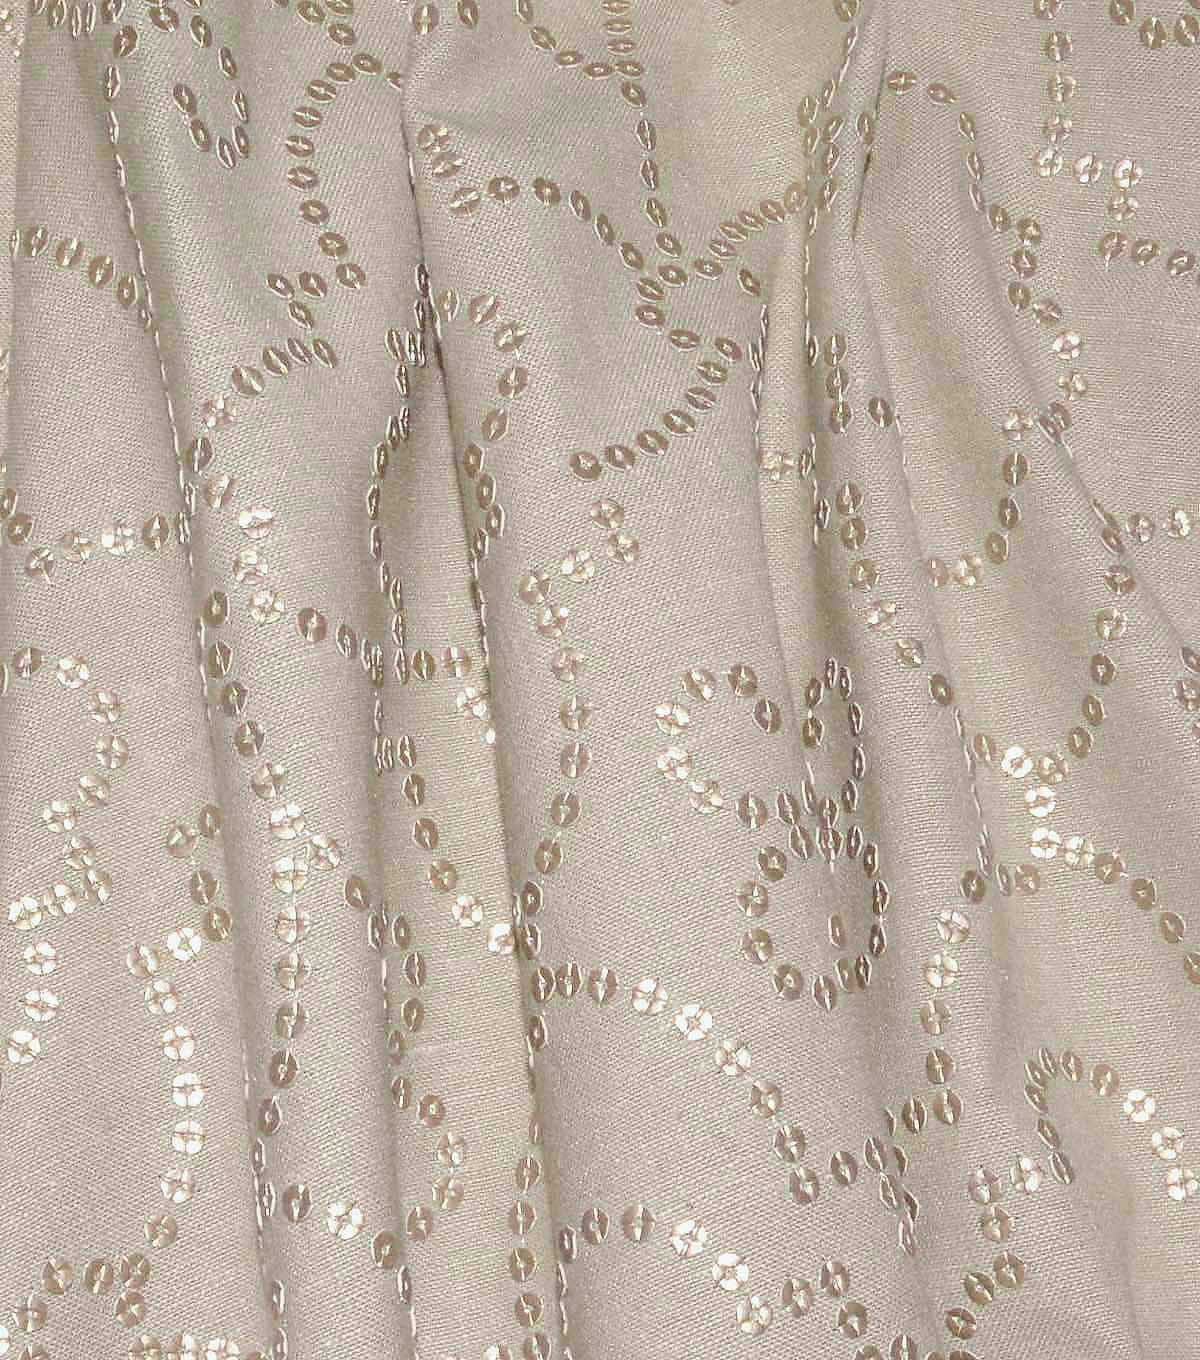 Dena Designs Upholstery Fabric 13x13\u0022 Swatch-Wow Factor Emb Rose Gold